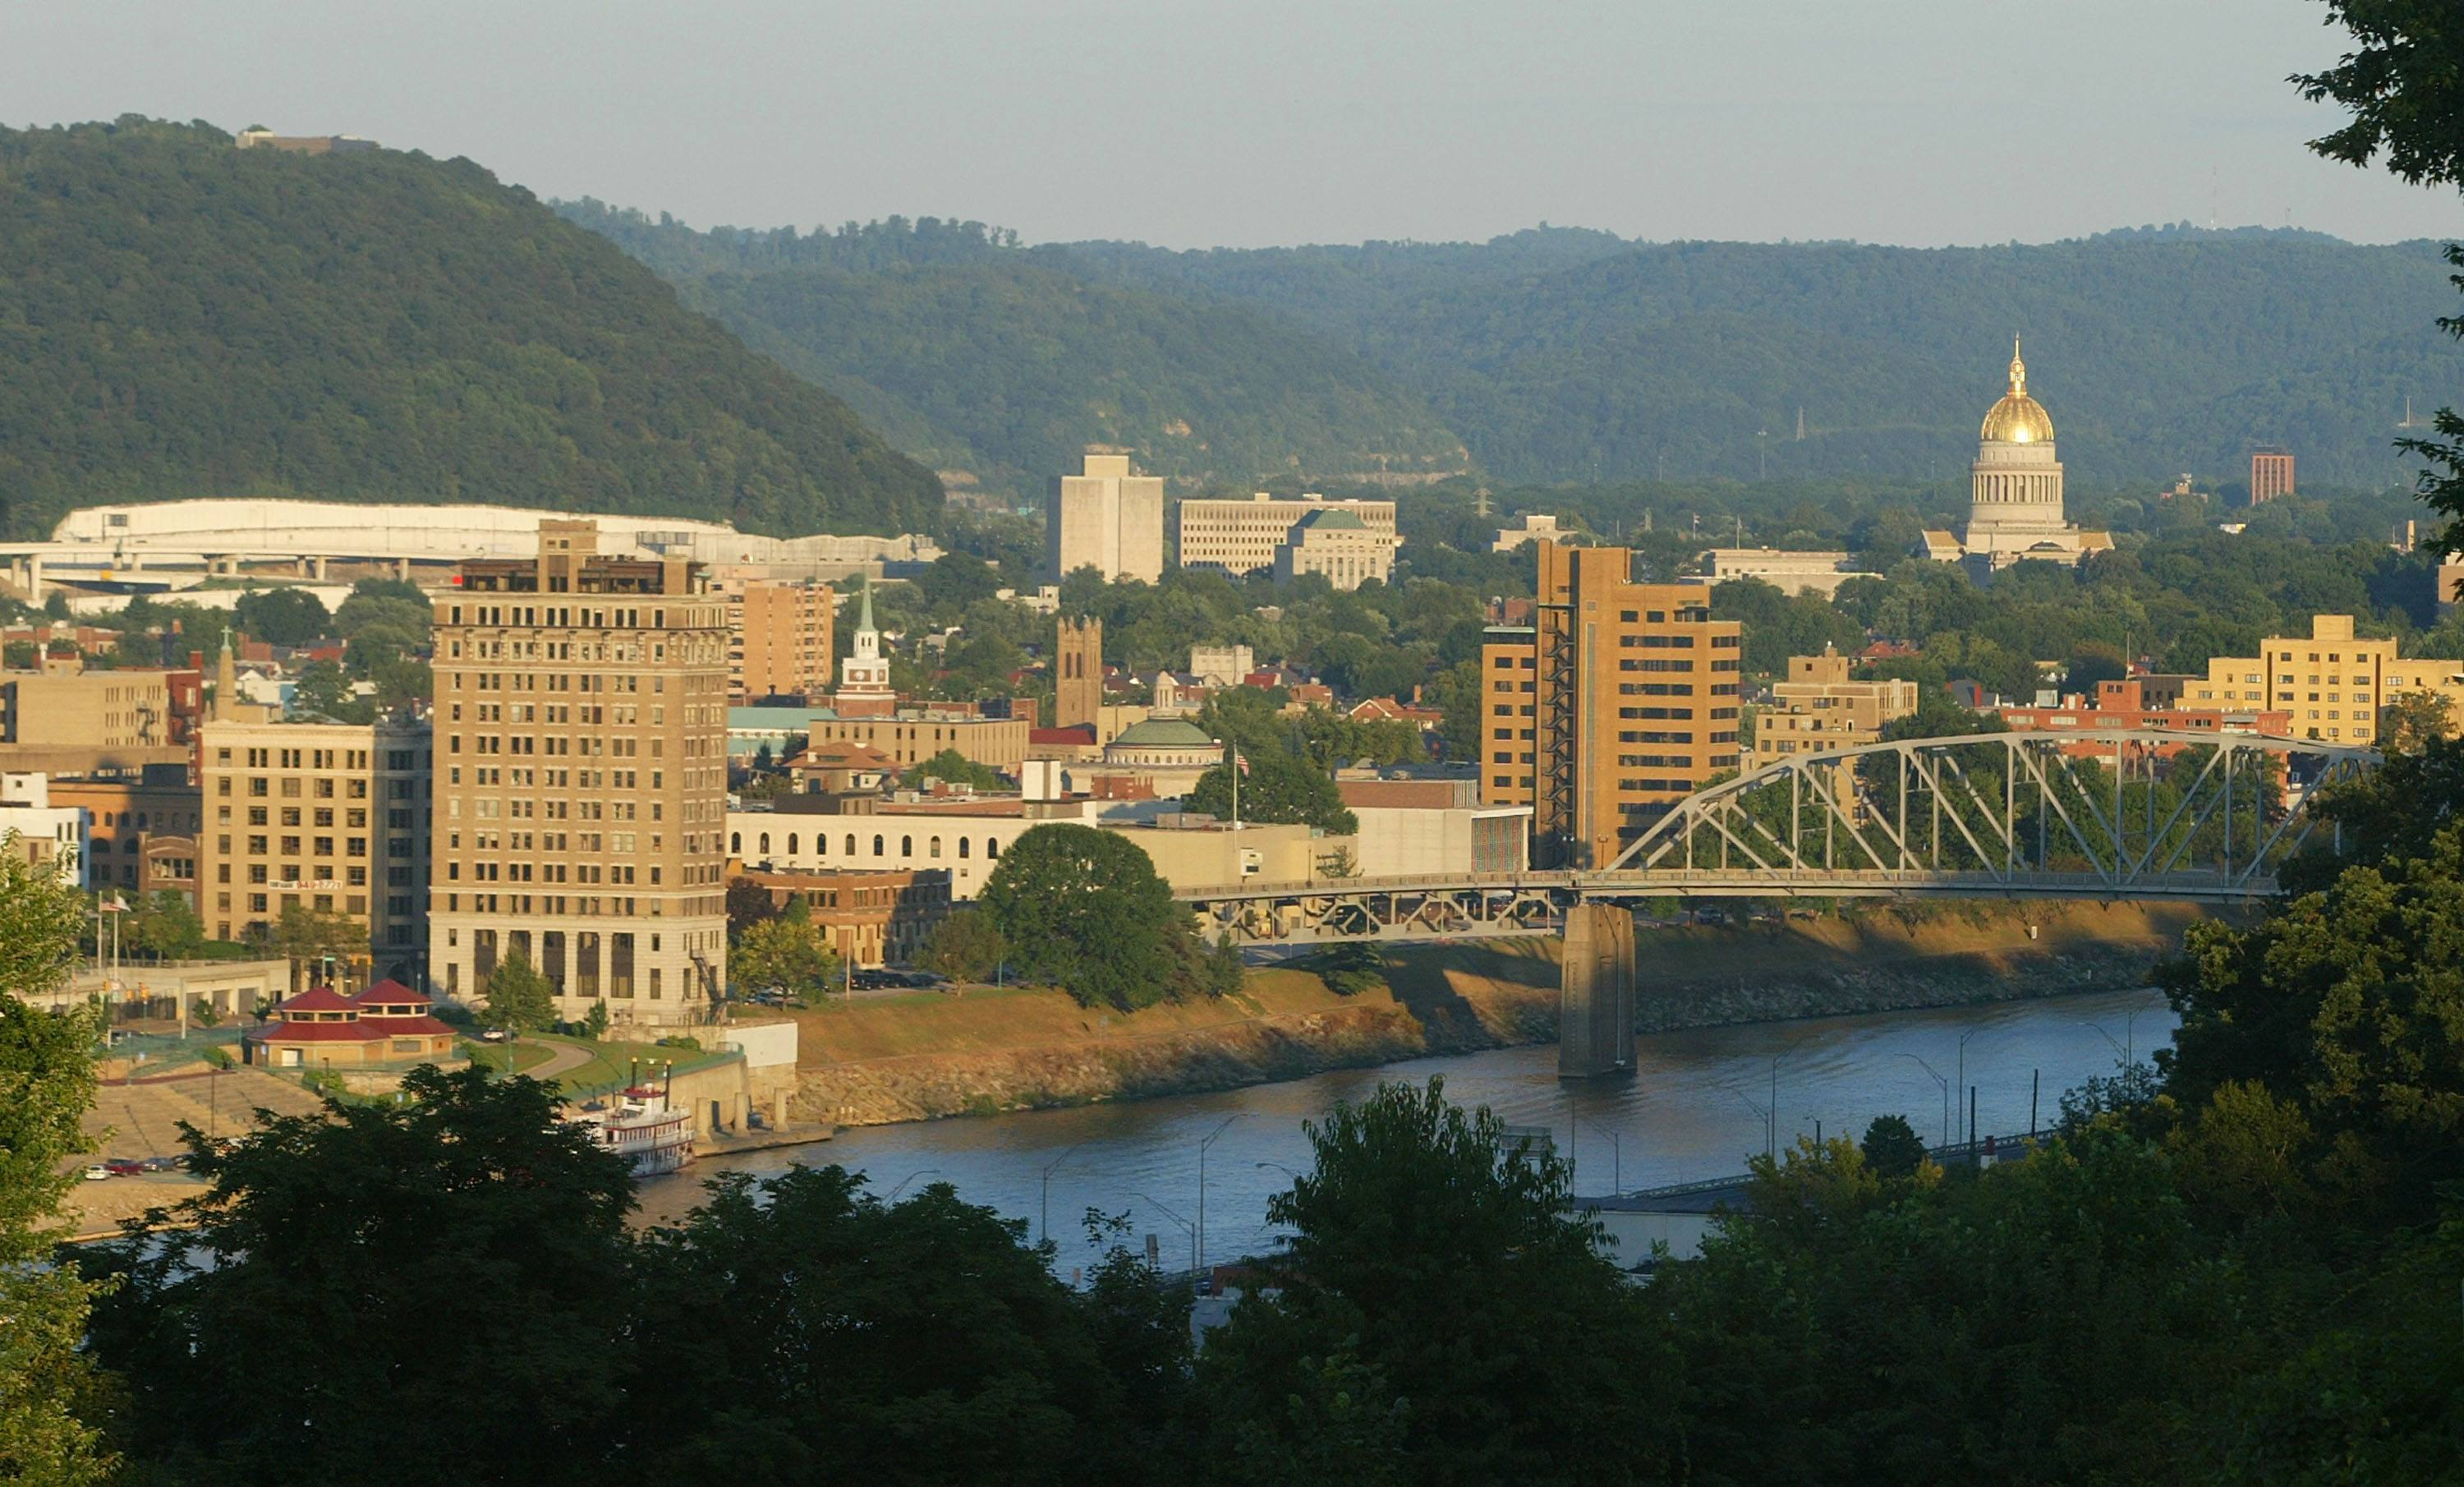 charleston, west virginia